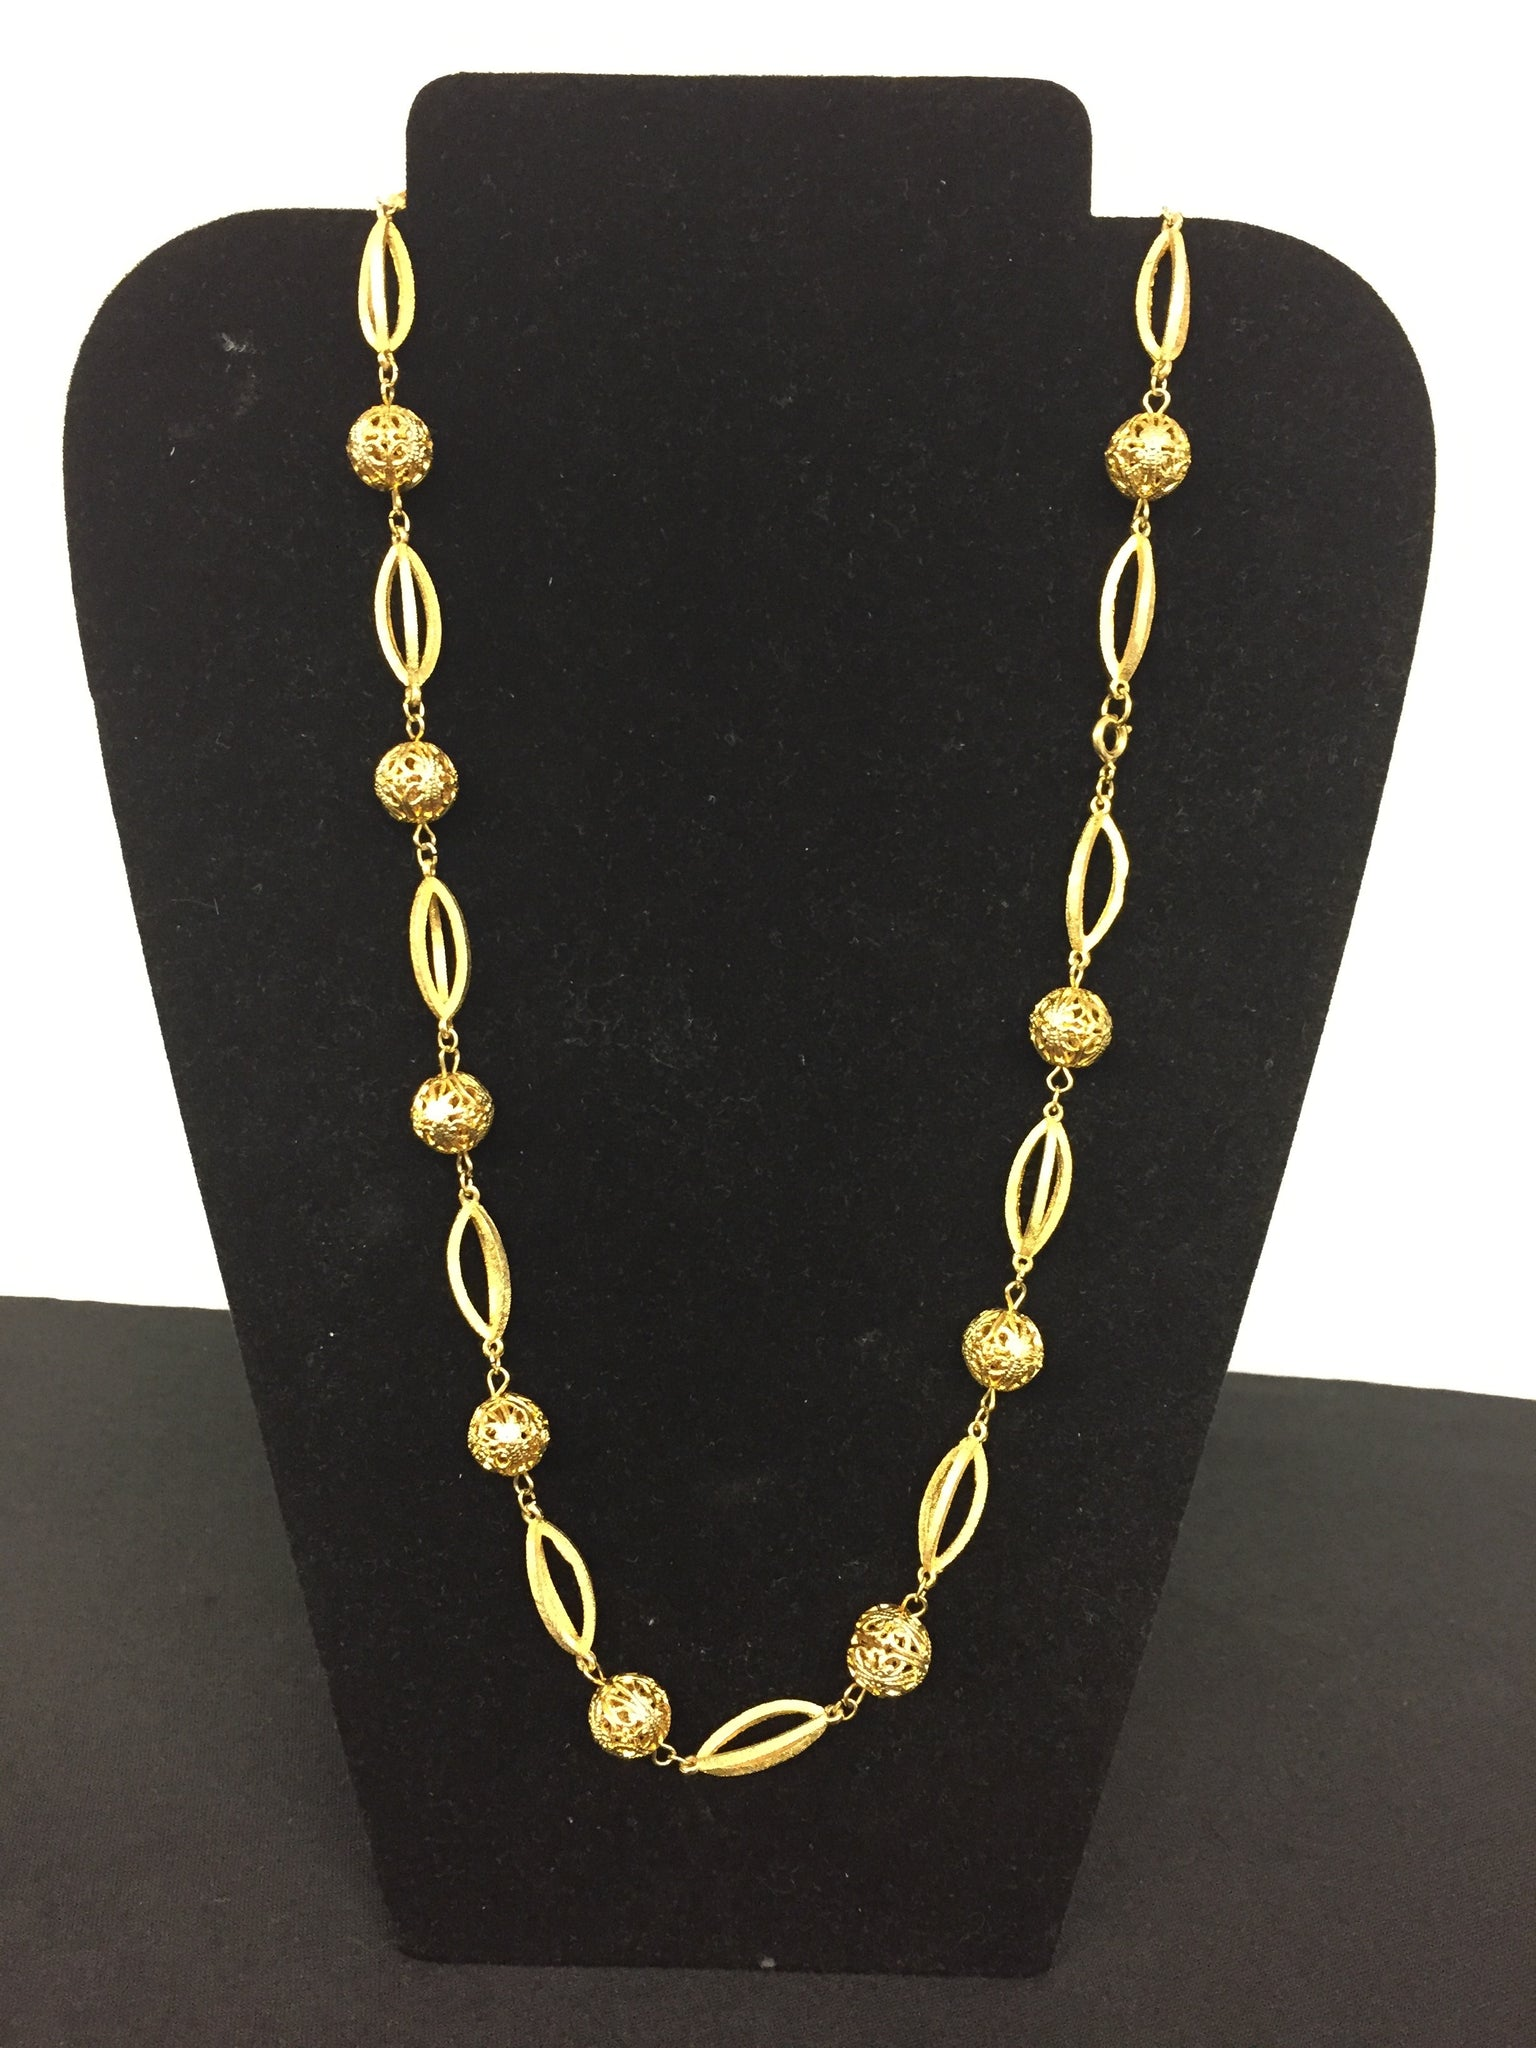 Vintage Unsigned All Goldtone Link Necklace Pierced Metal Retro Look